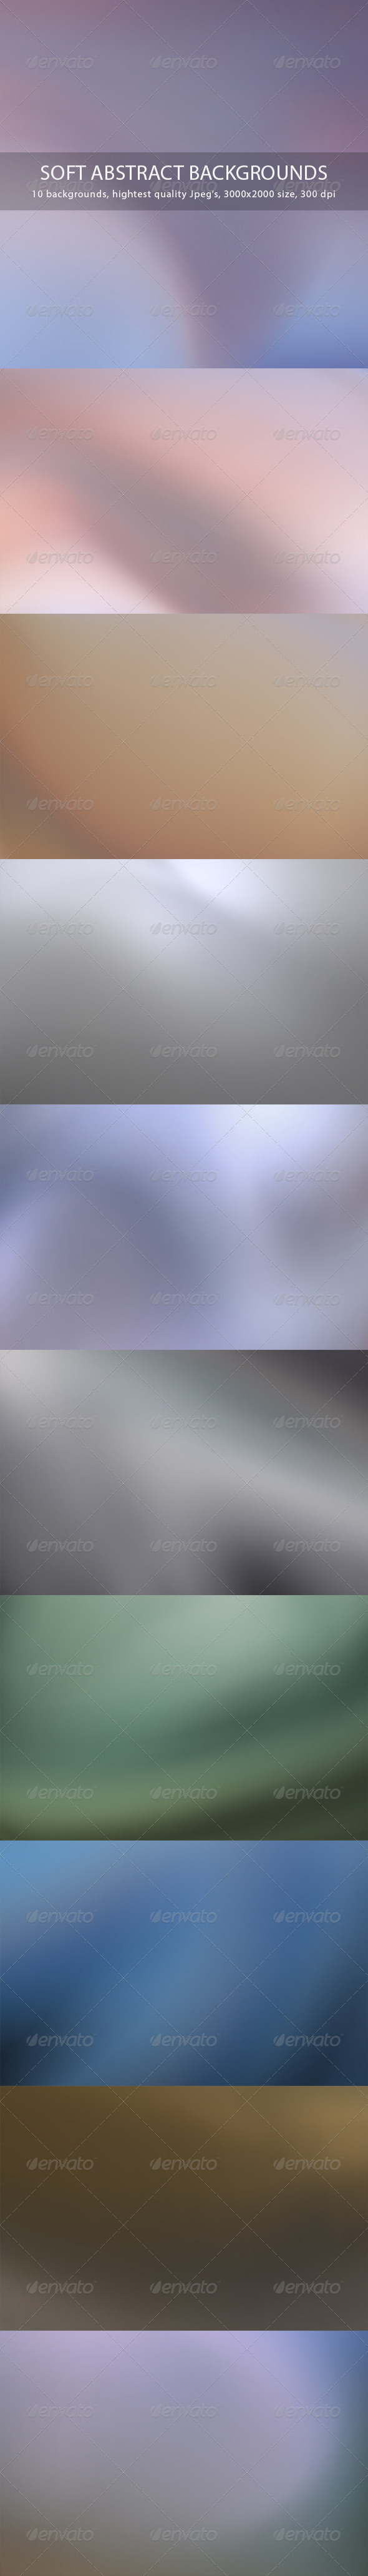 Soft Abstract Backgrounds - Abstract Backgrounds